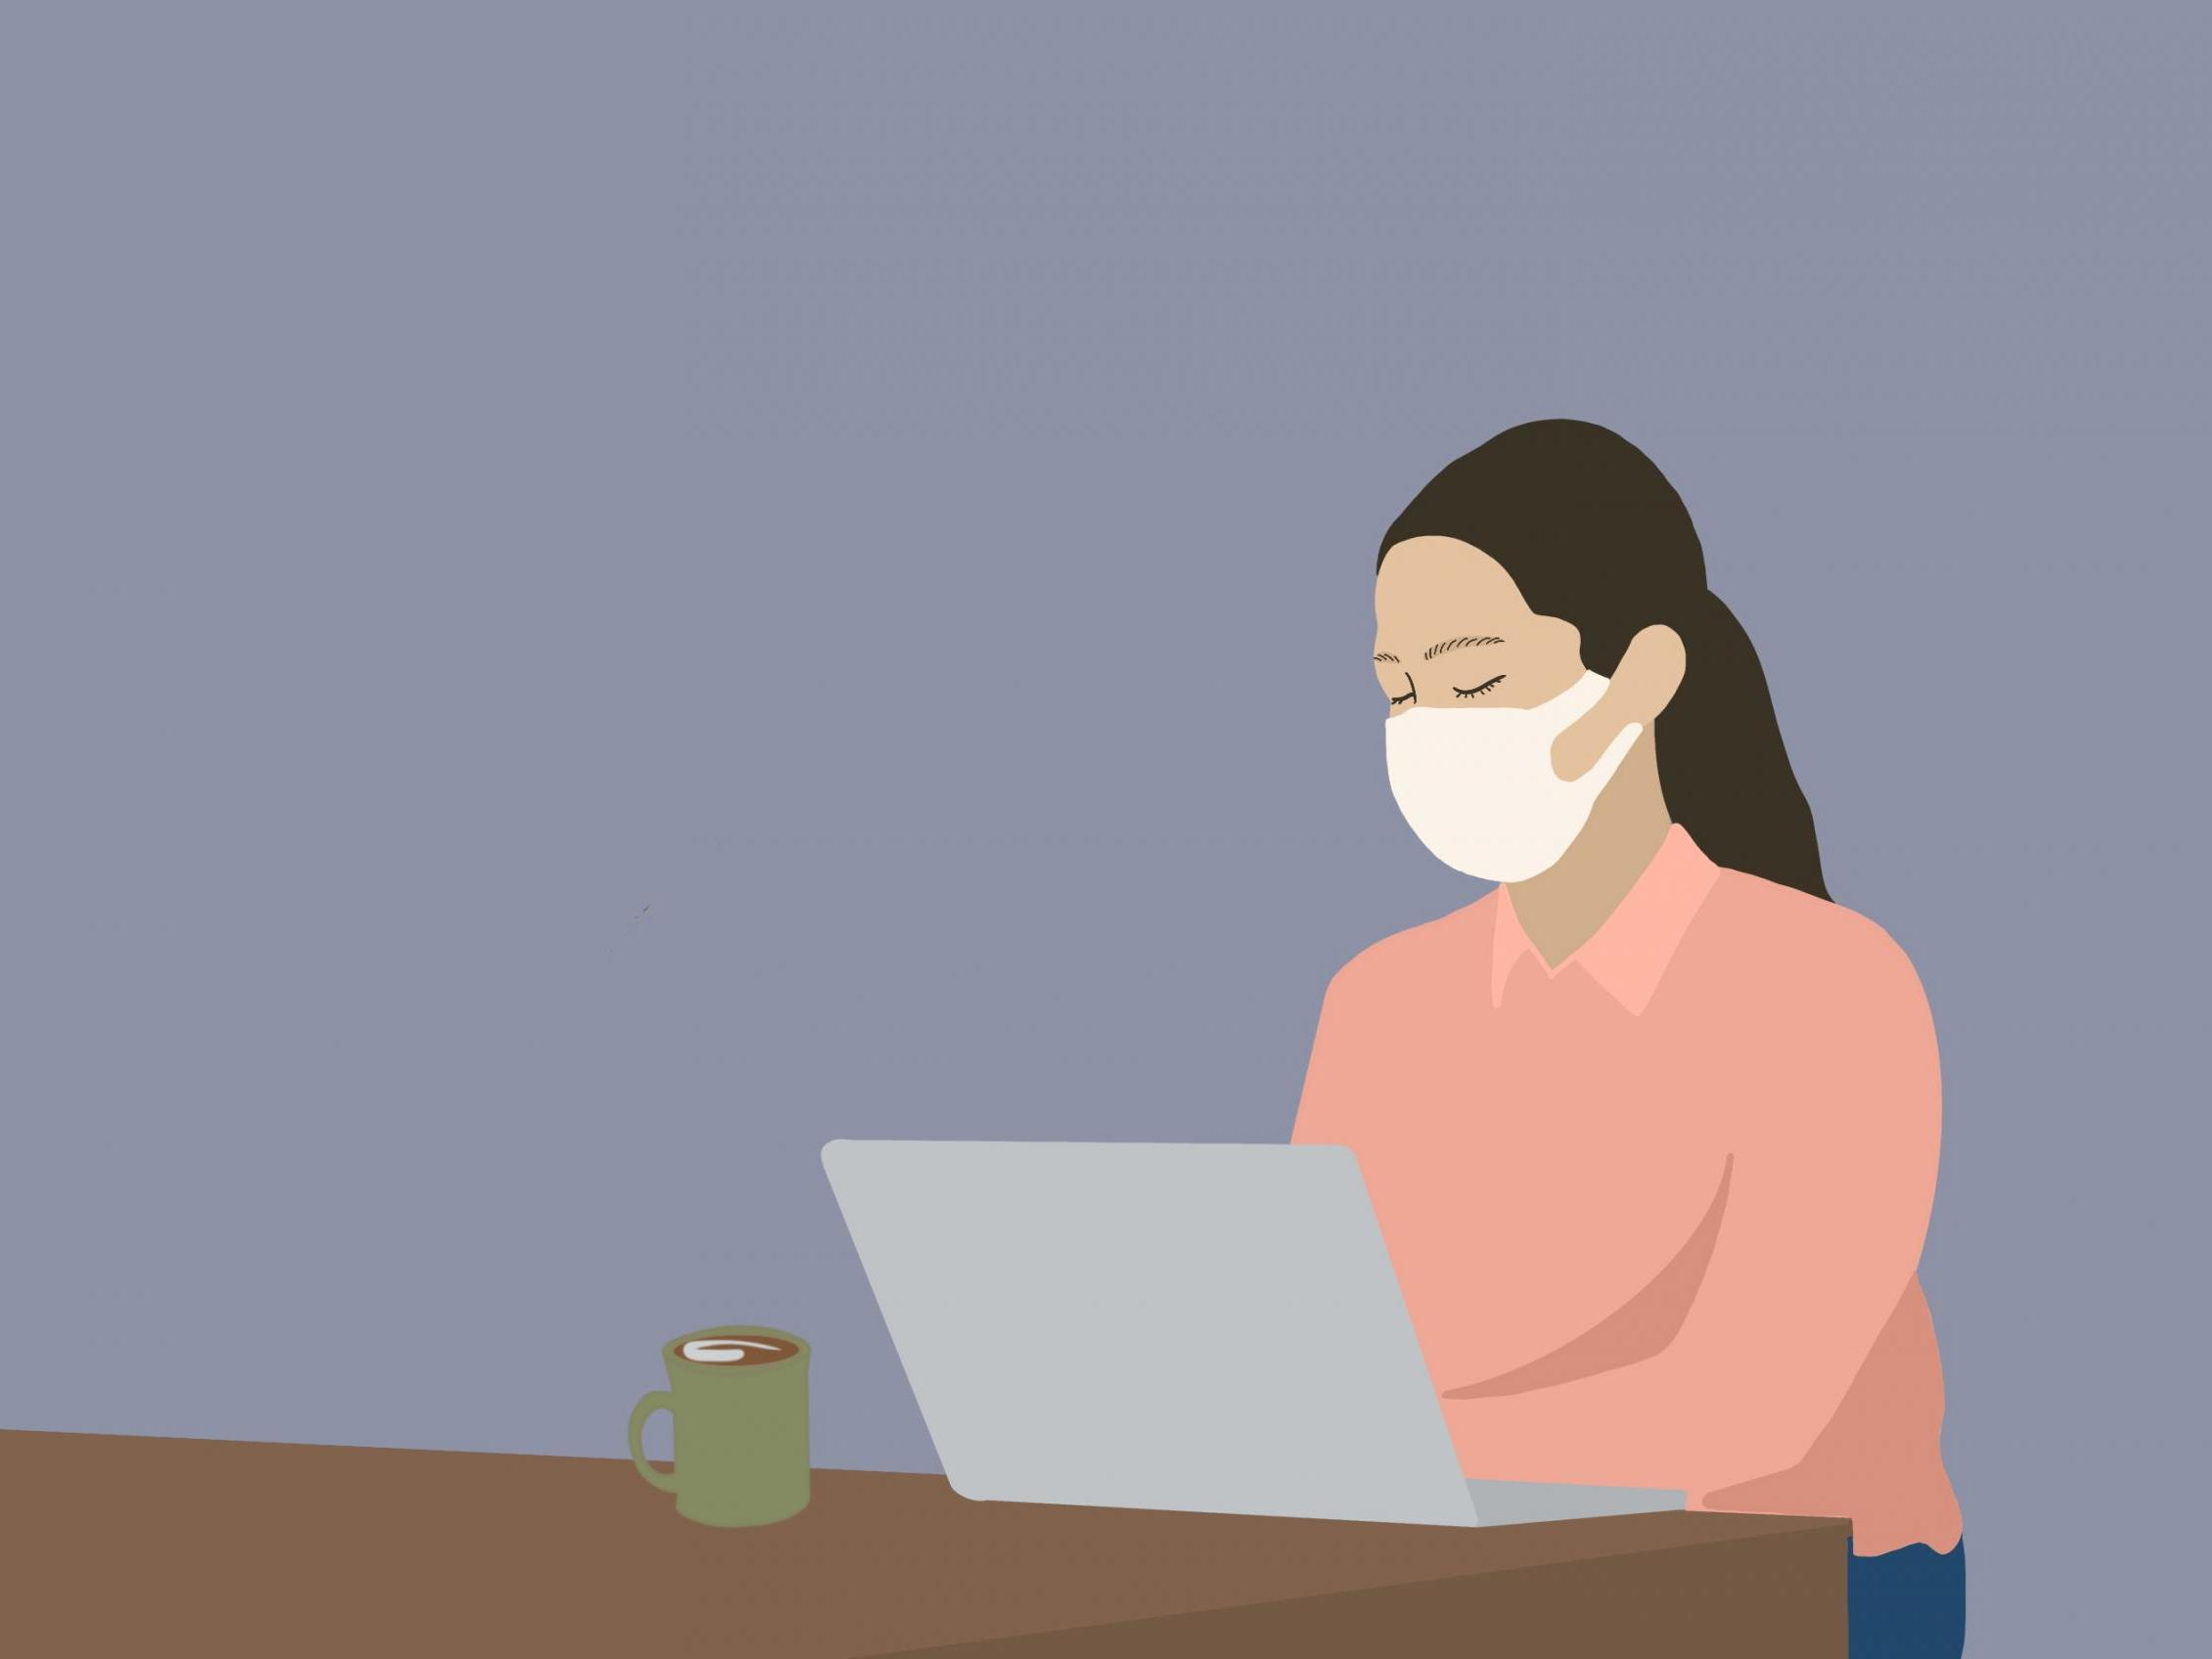 Coronavirus: How to curb your anxiety about Covid-19 virus according to psychologists